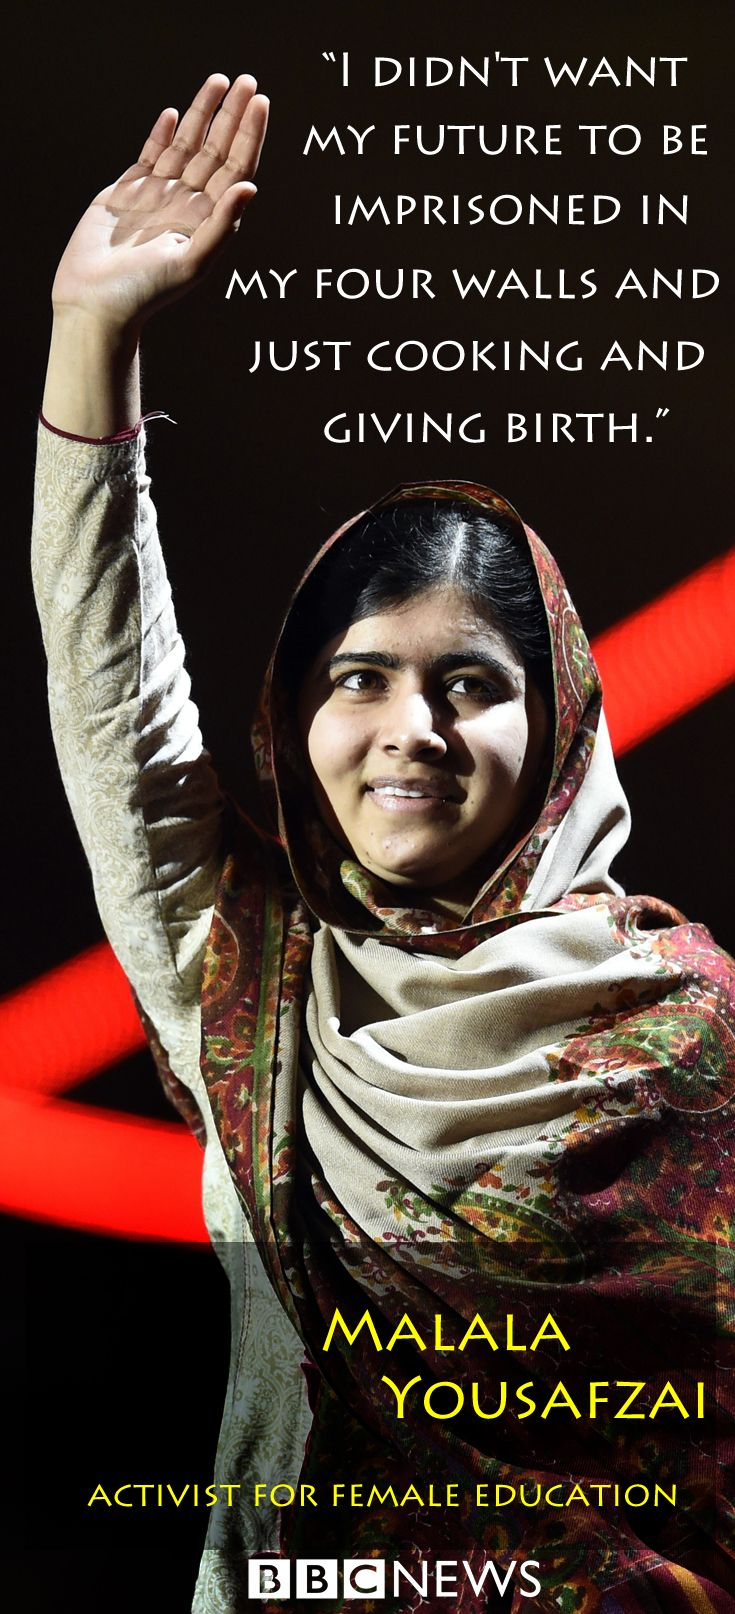 Malala: The girl who was shot for going to school